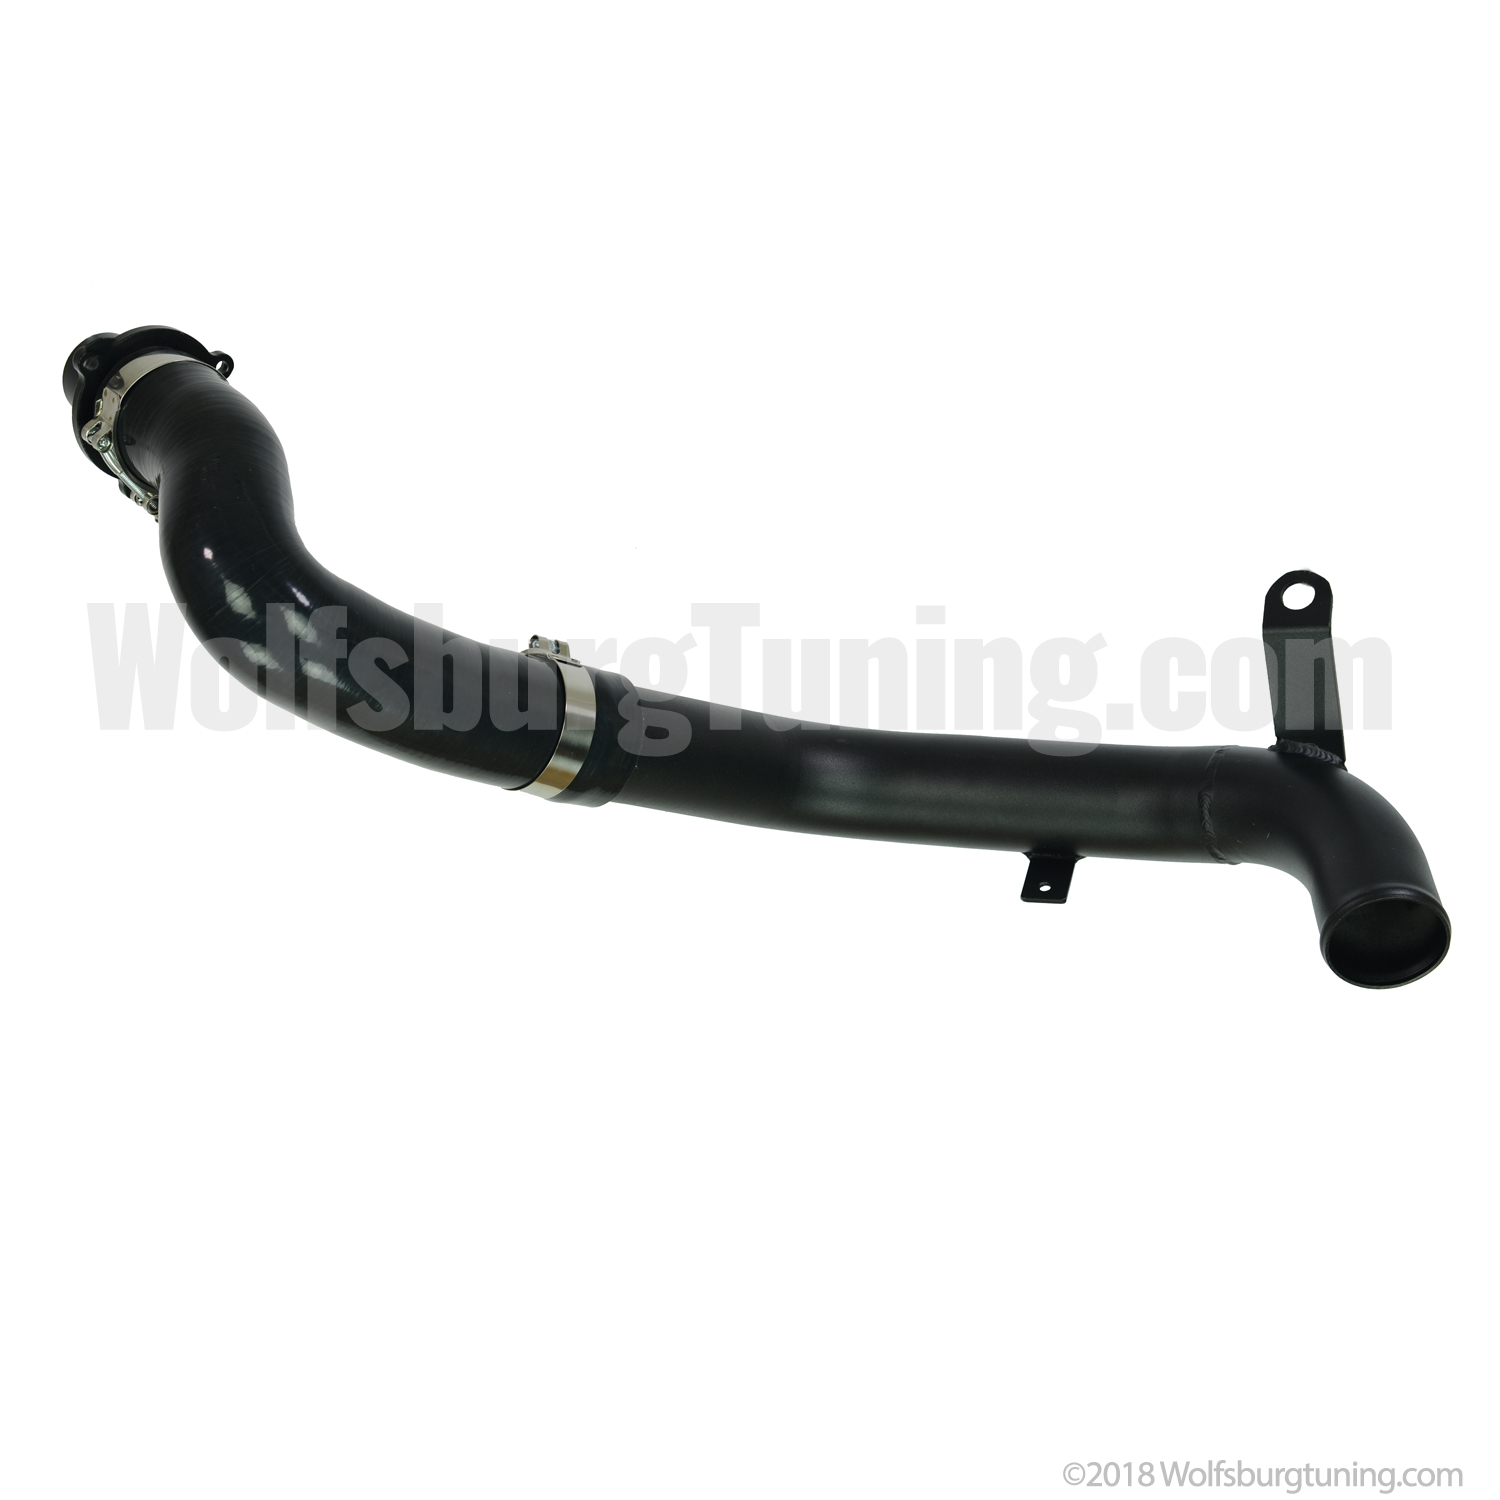 Turbo Discharge Pipe Kit - High Flow (MK7 A3/S3)